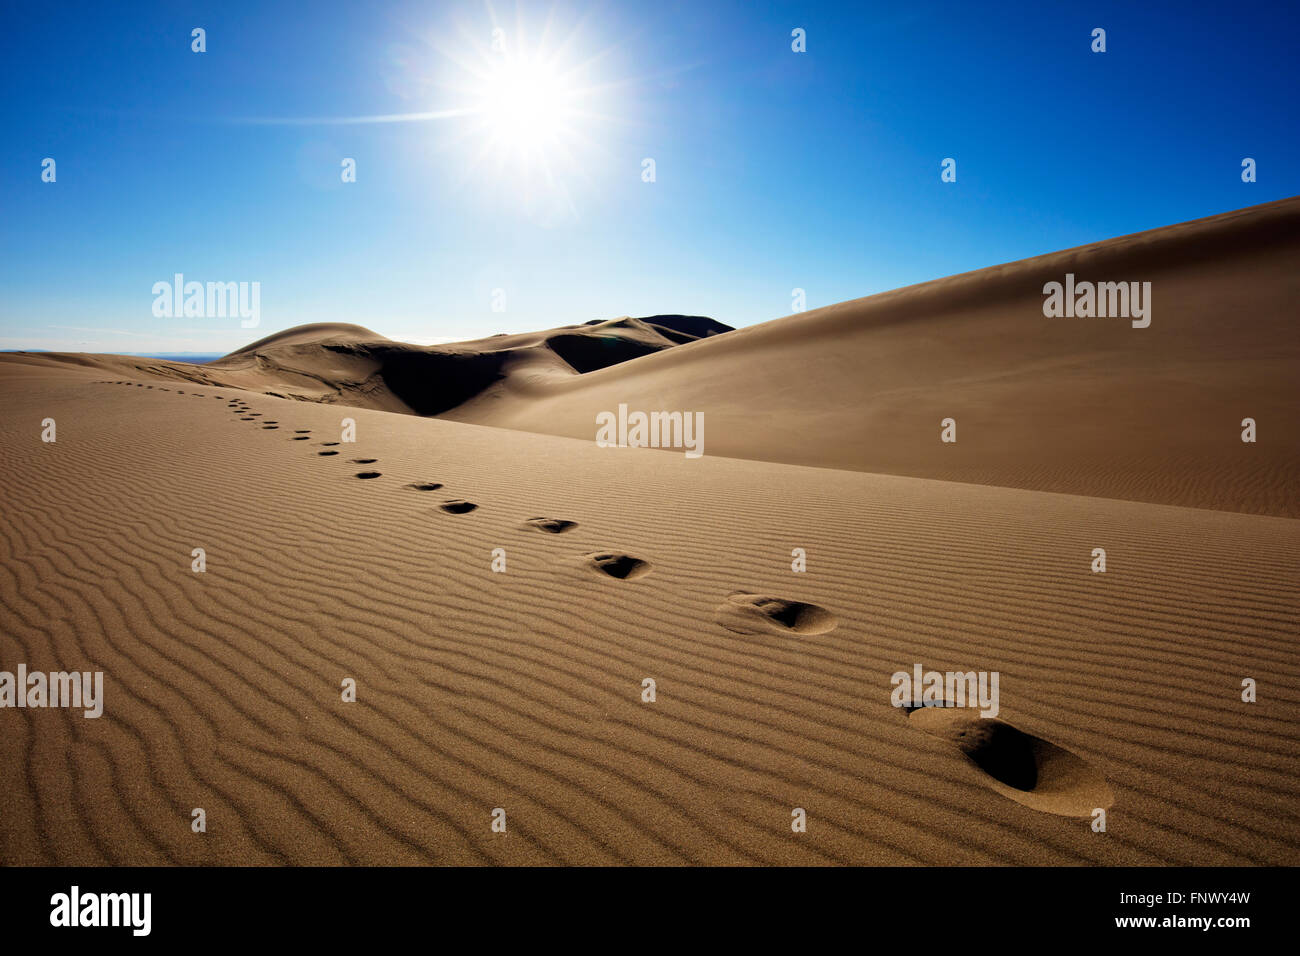 Sonne über Spuren in abgelegenen Wüste Sanddünen, Great Sand Dunes National Park, Colorado, USA. Stockbild